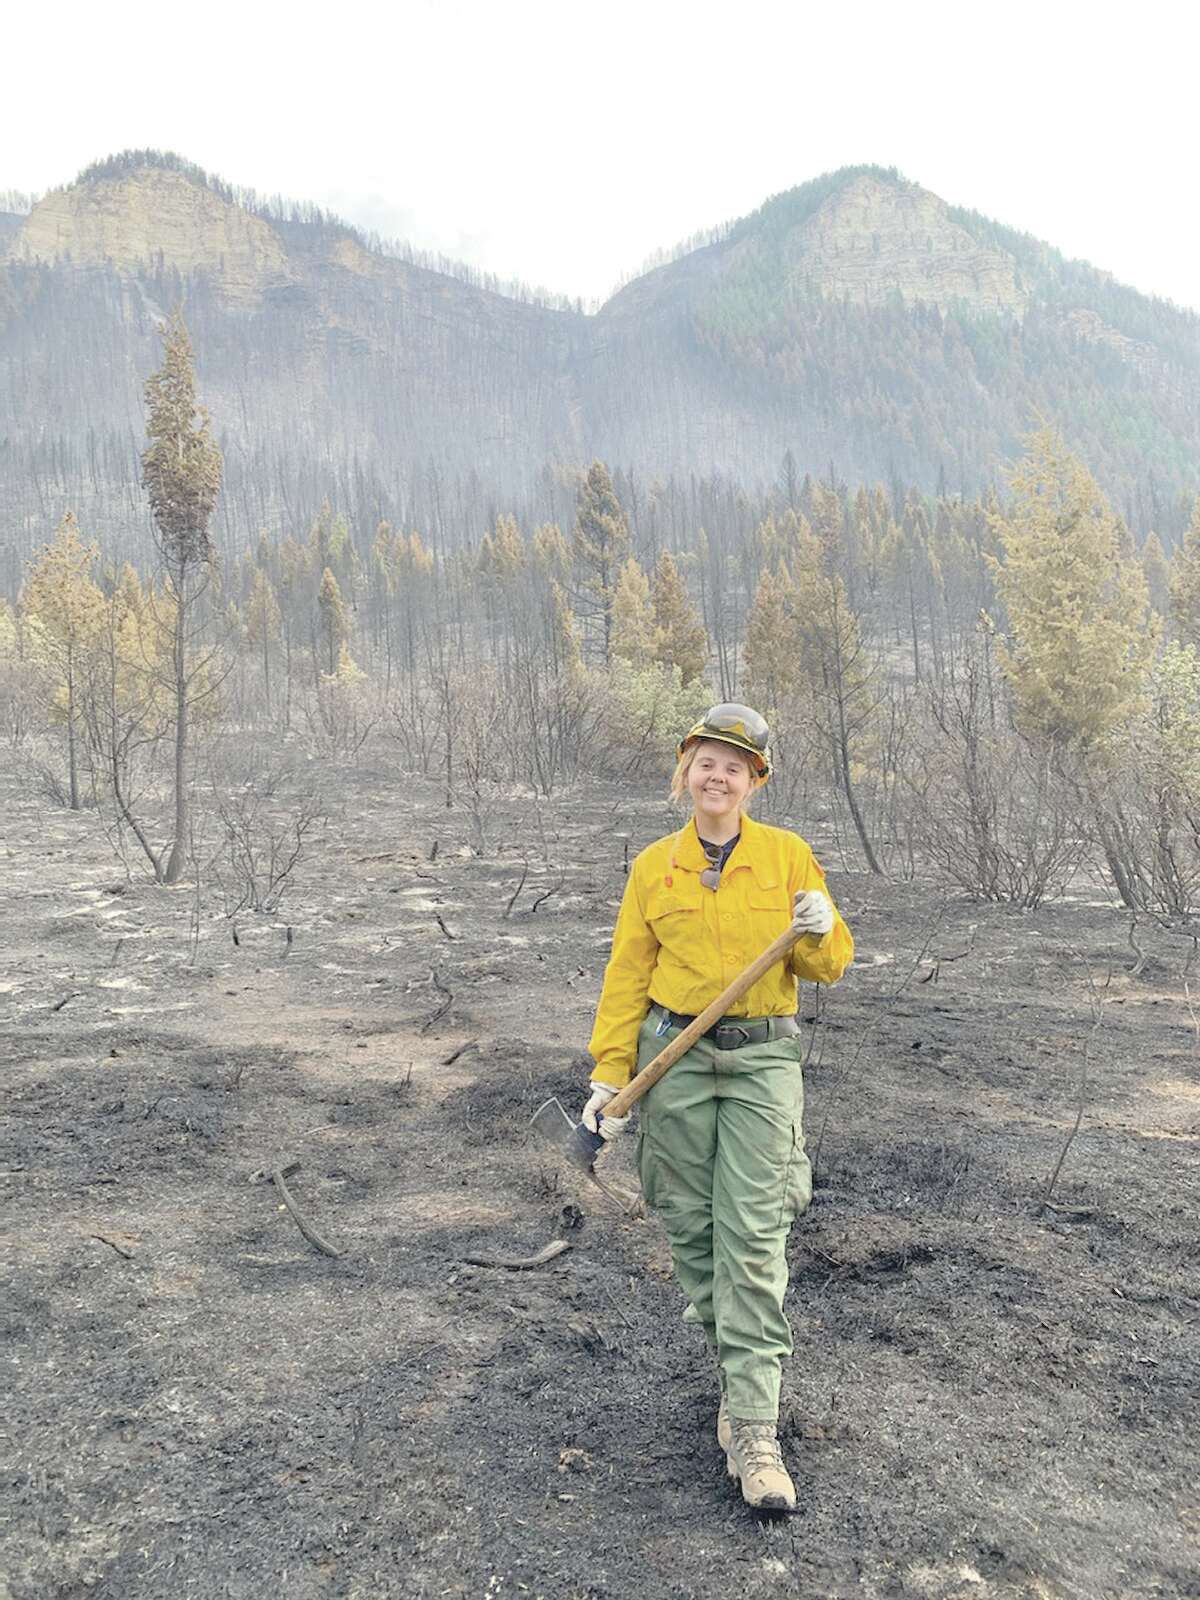 Kayla Alexander, natural resource coordinator at Pere Marquette State Park in Grafton, works on fighting Colorado's Pine Gulch Fire in August.